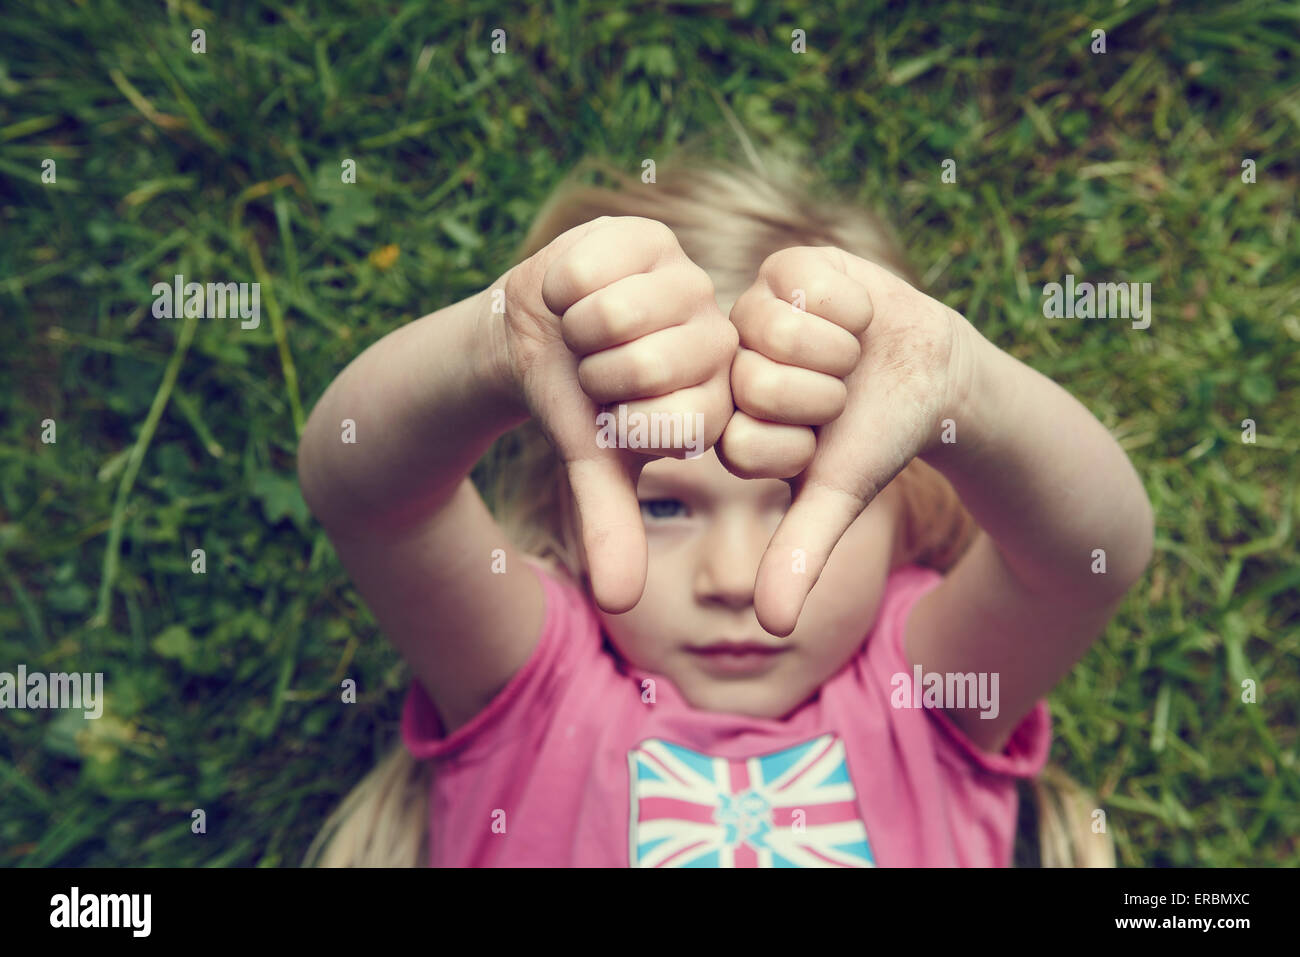 Displeased girl gesturing thumbs down lying on green grass background - Stock Image